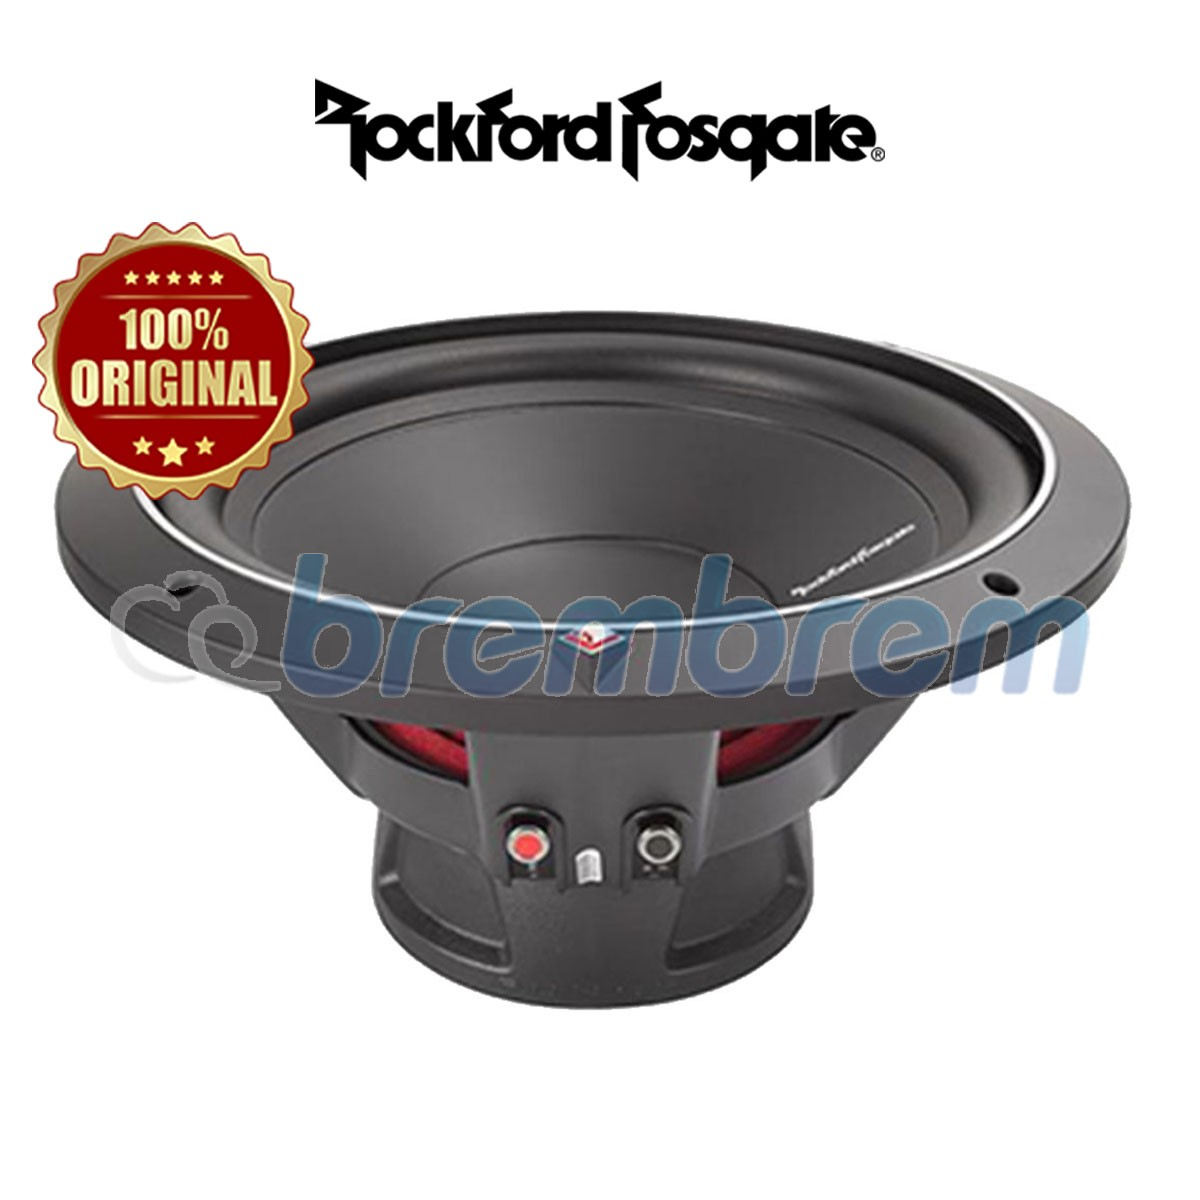 ROCKFORD FOSGATE P1S4-12 - SUBWOOFER PASIF 12 INCH